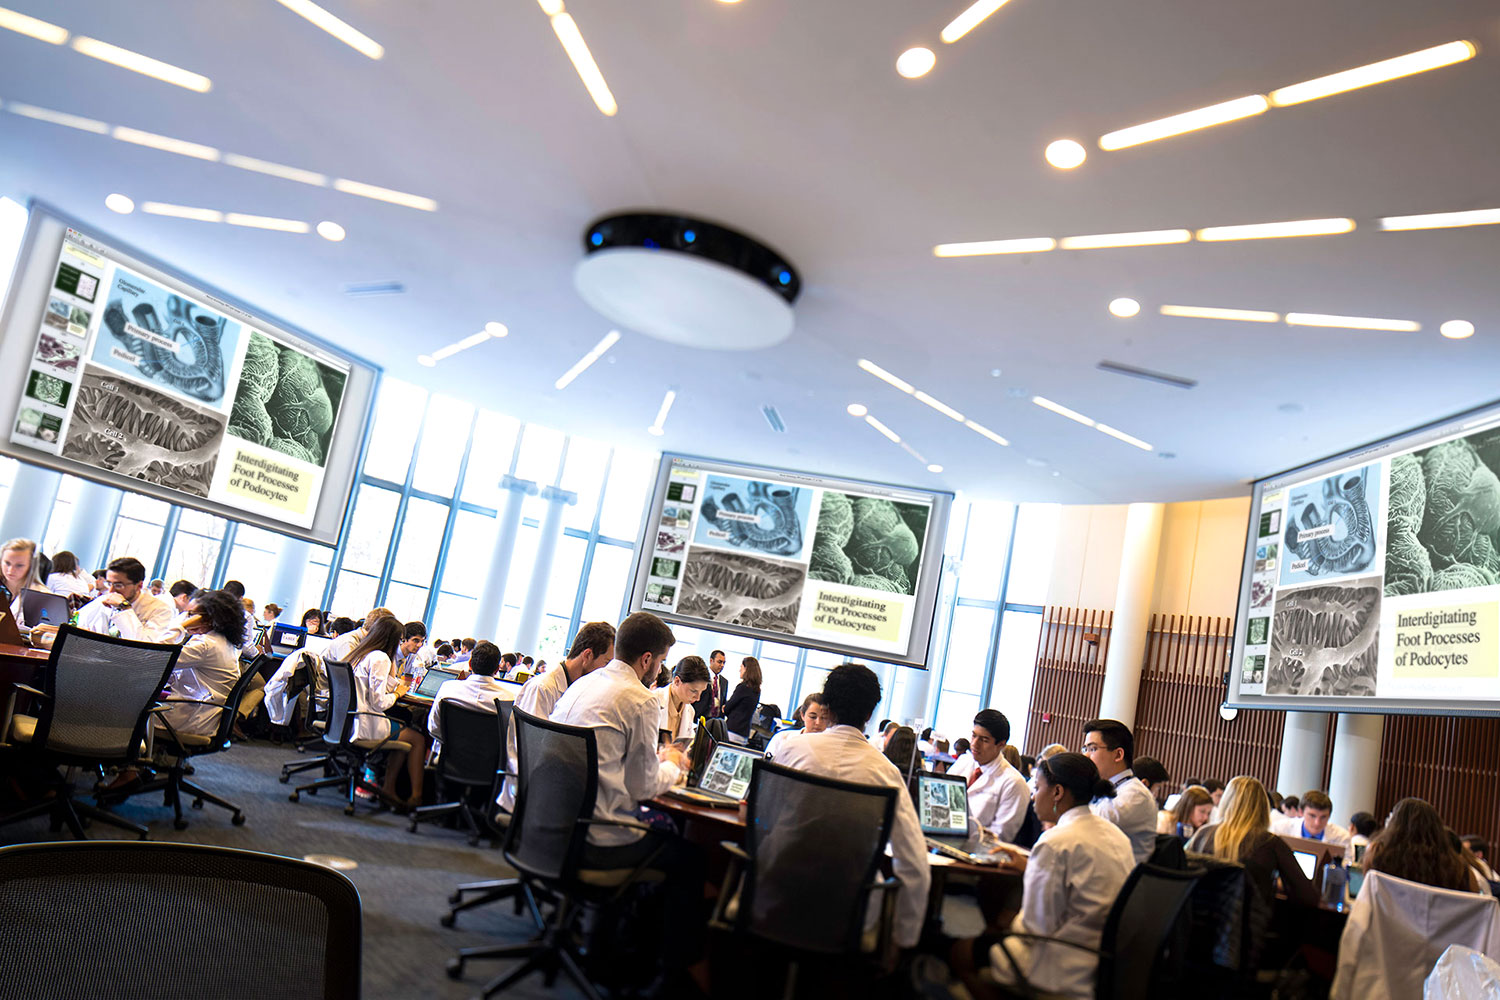 UVA School of Medicine students at work in the Claude Moore Medical Education Building. (UVA Health System photo)